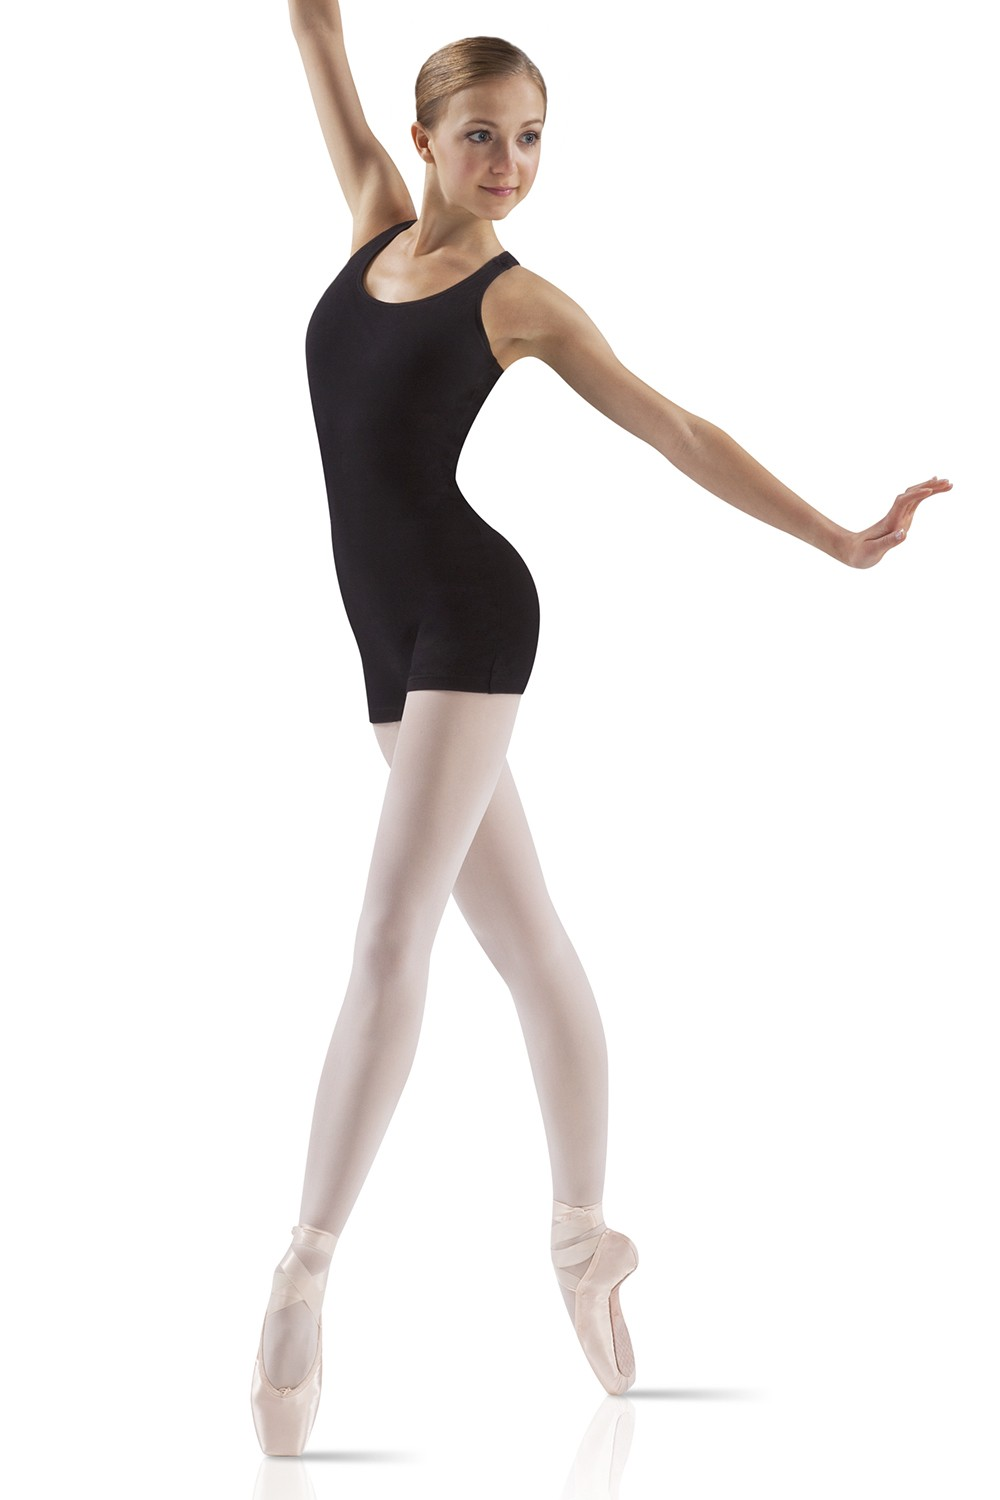 Strap Back Unitard Women's Dance Leotards